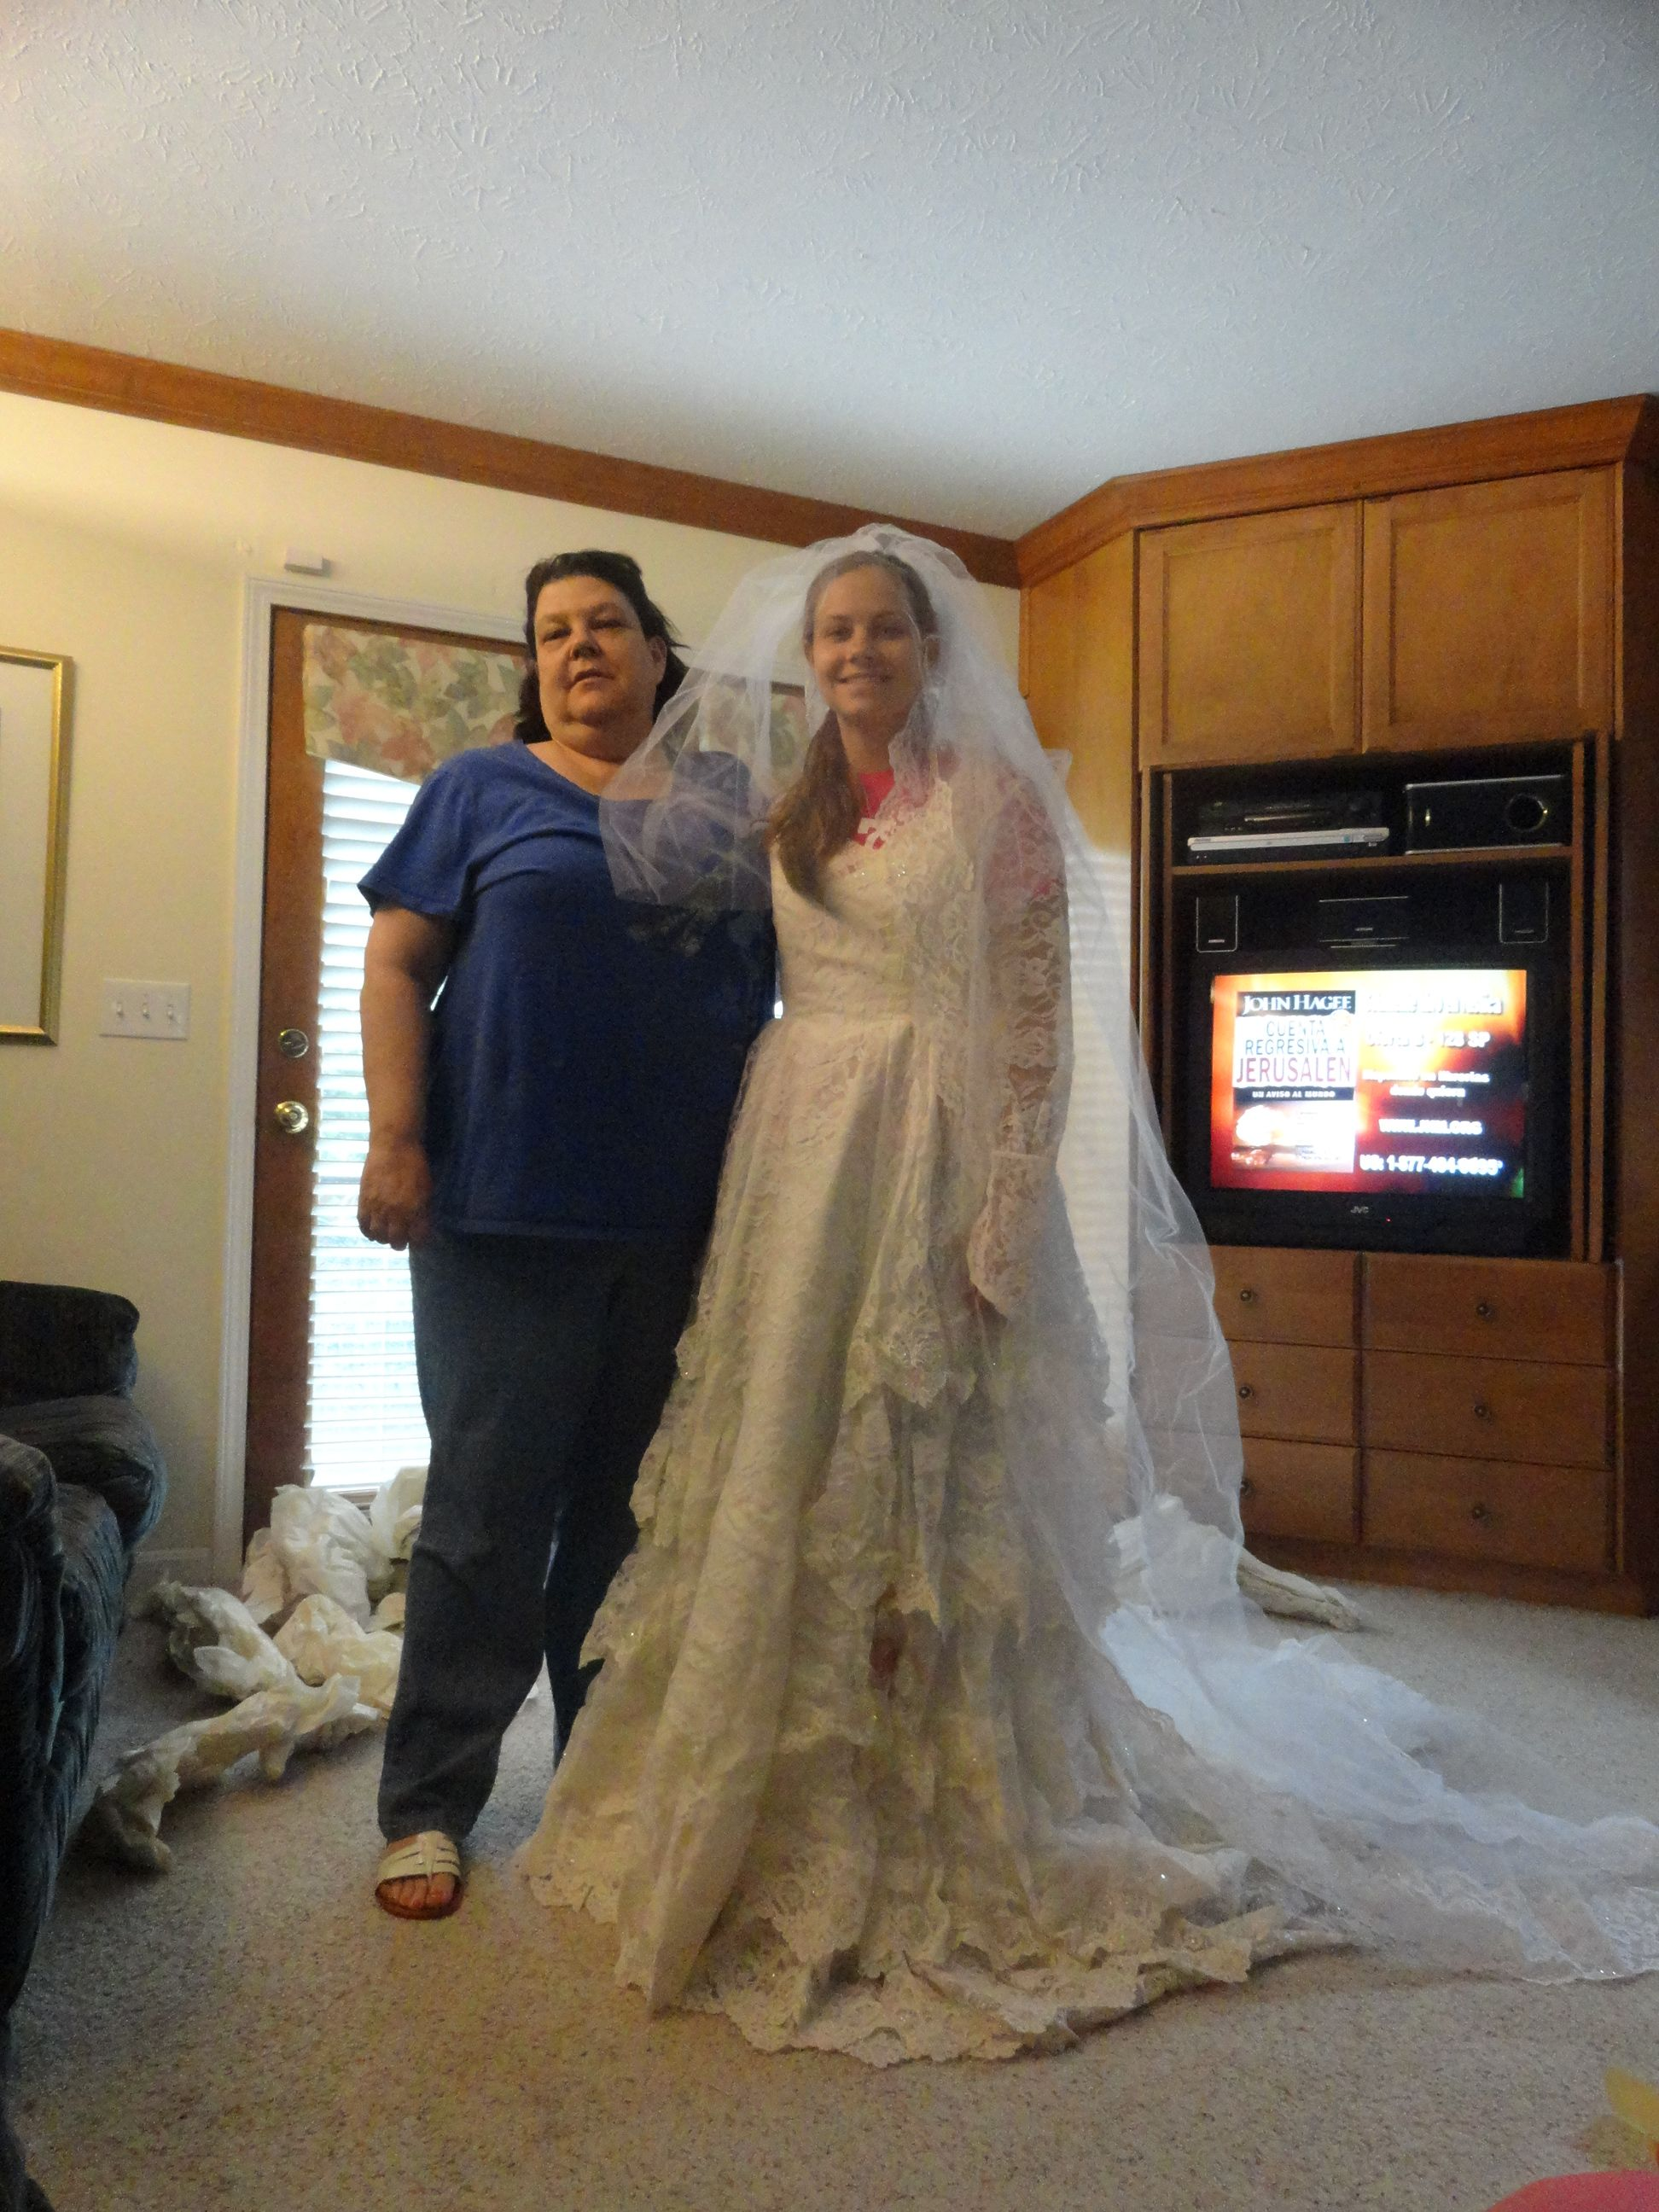 5.13.12-sister and i tried on mom's wedding dress!